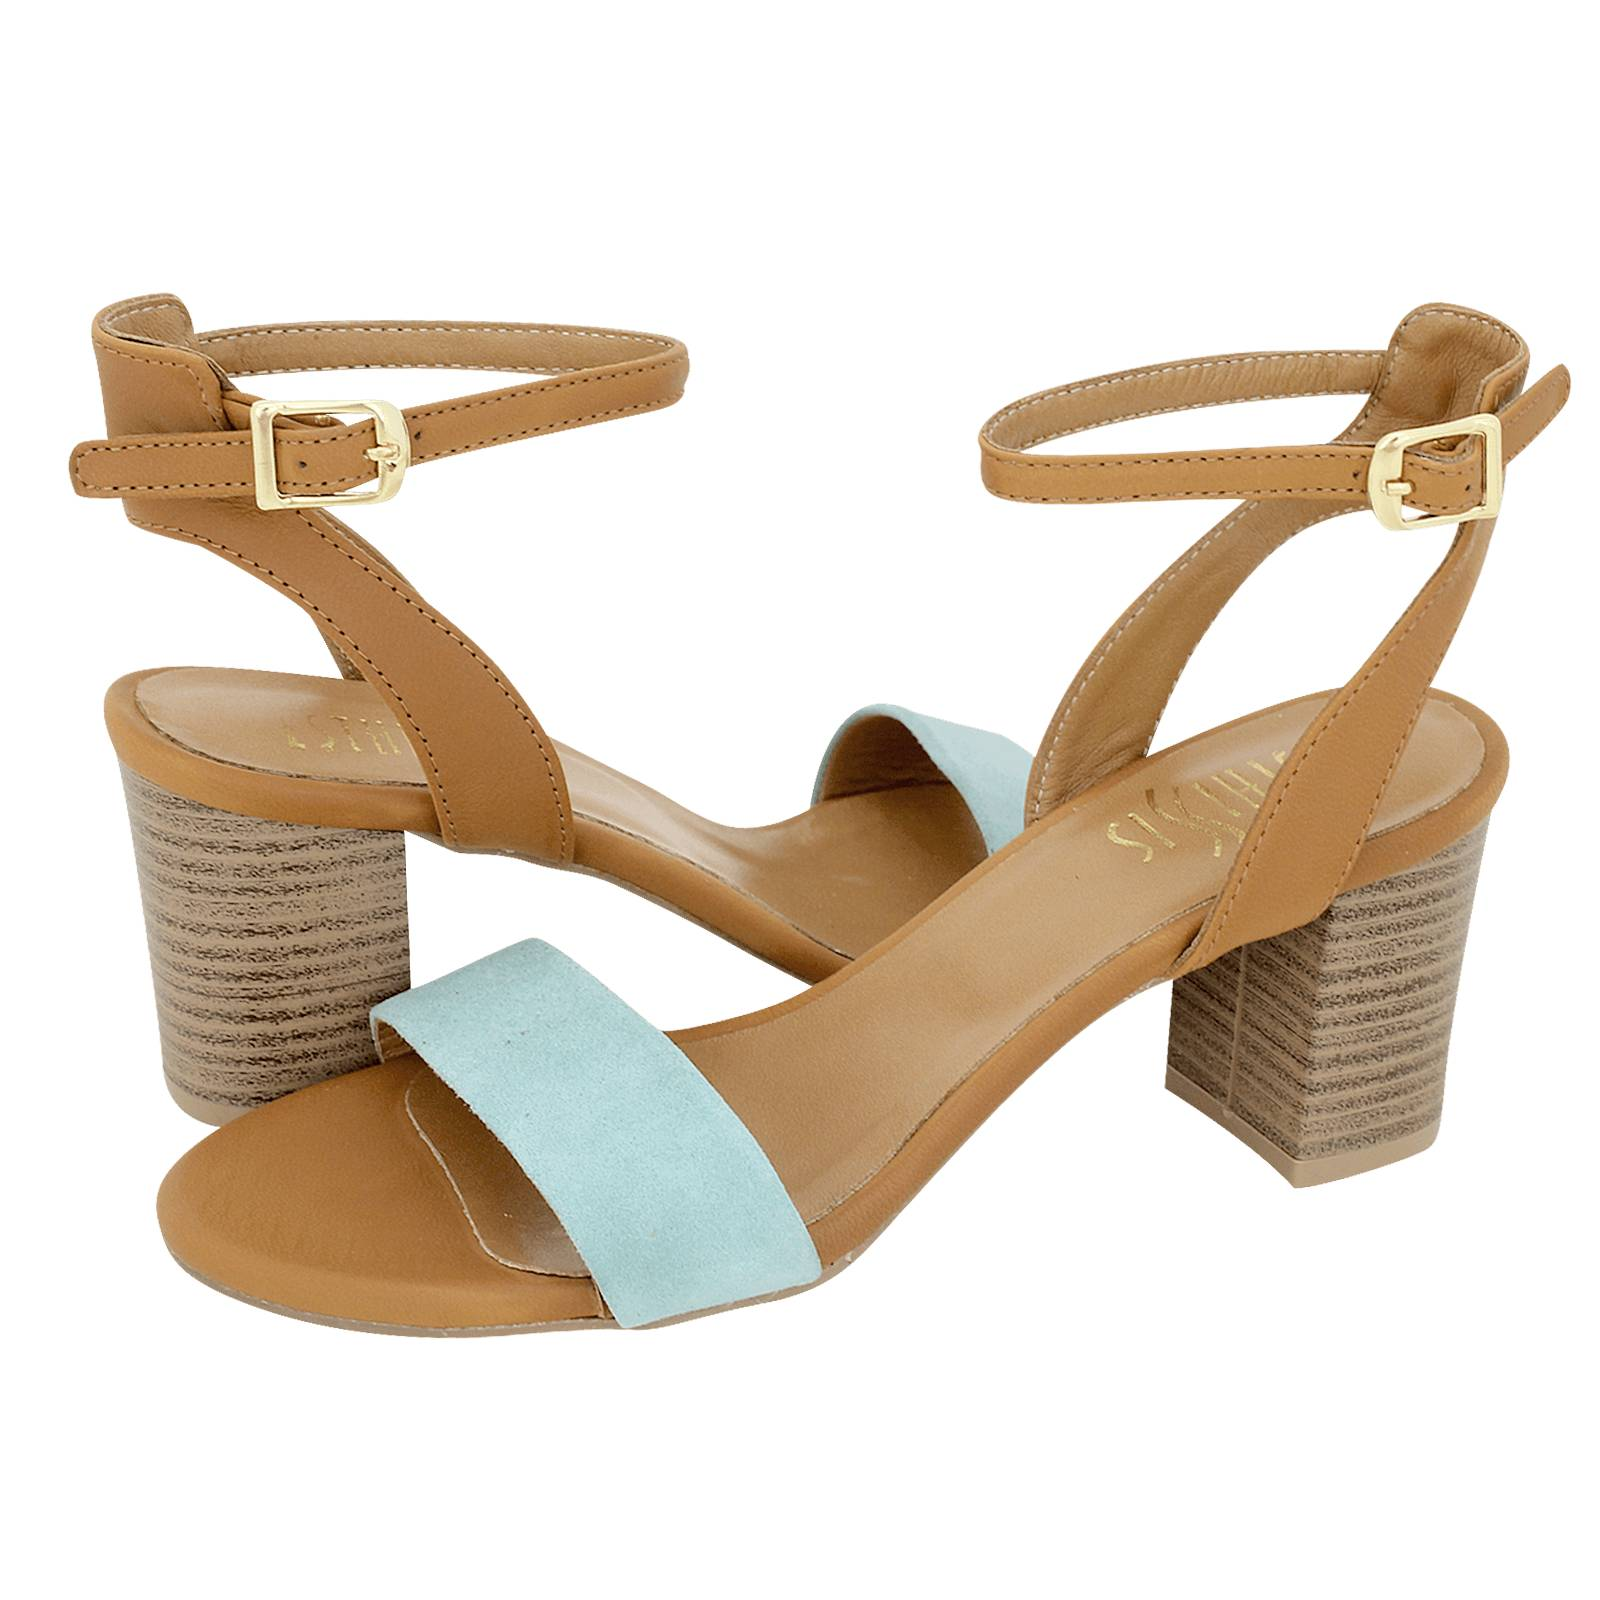 Stadil - Esthissis Women s sandals made of suede and leather ... 4de8ed71a0a